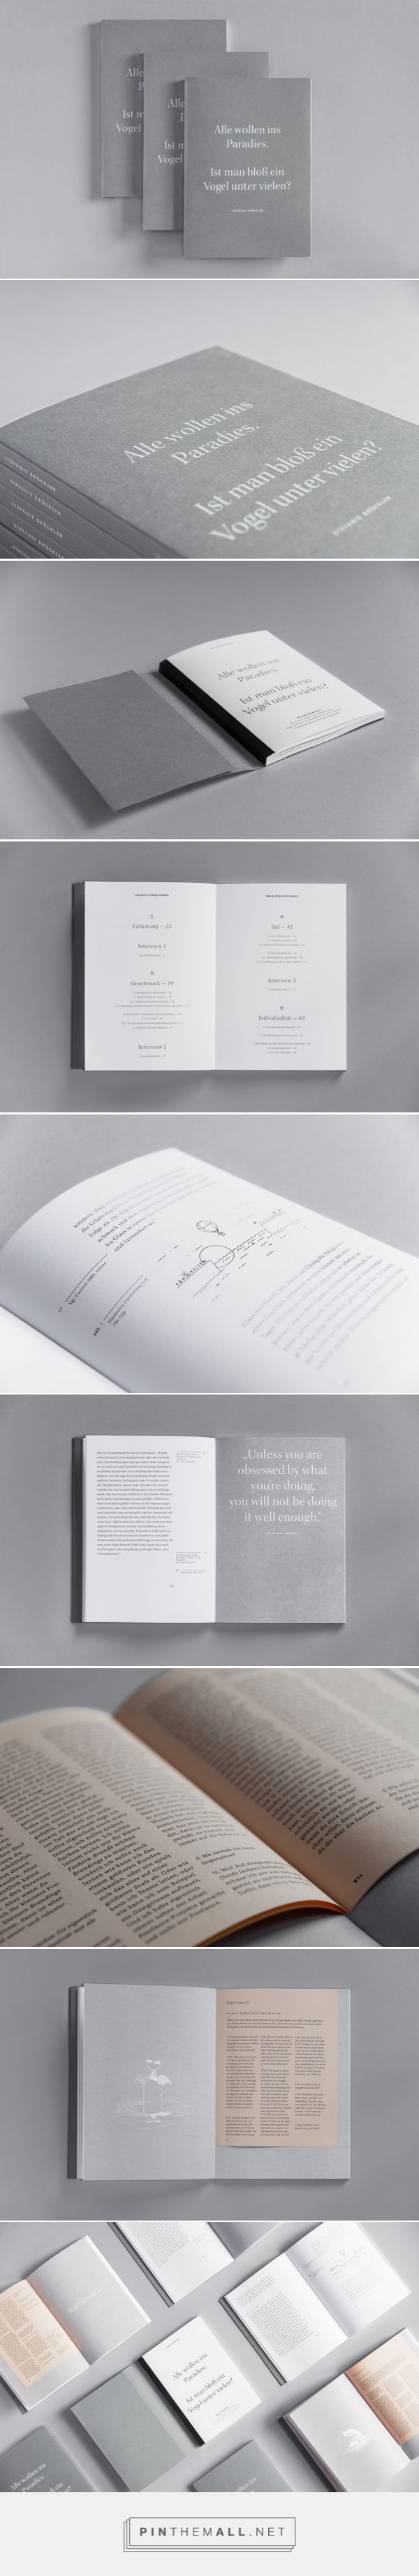 Get your book layout design within 24 hours. www.fiverr.com/...